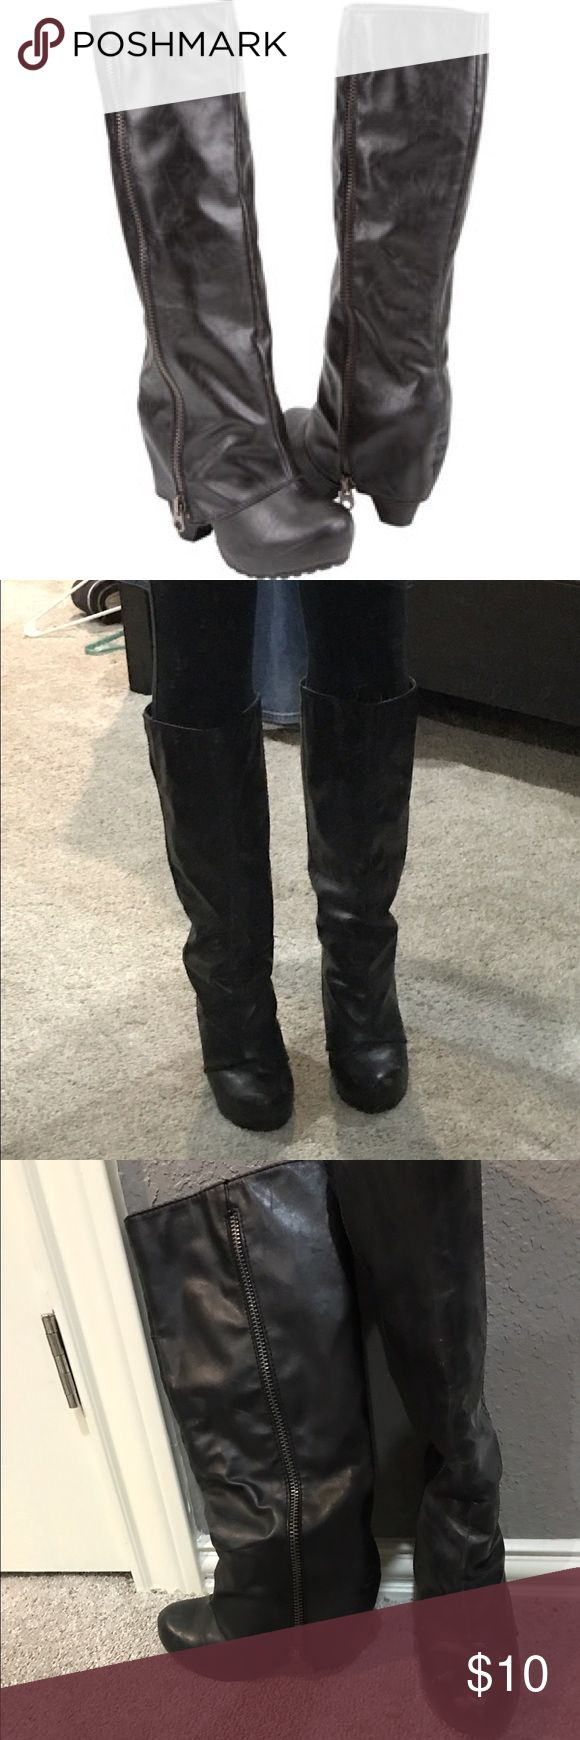 Black Over the Heel Boots These are great going out boots - spice up any outfit and very comfy to walk in. They have been worn many times and have a few scoffs to prove that. Price reflects condition. Big Buddha Shoes Heeled Boots